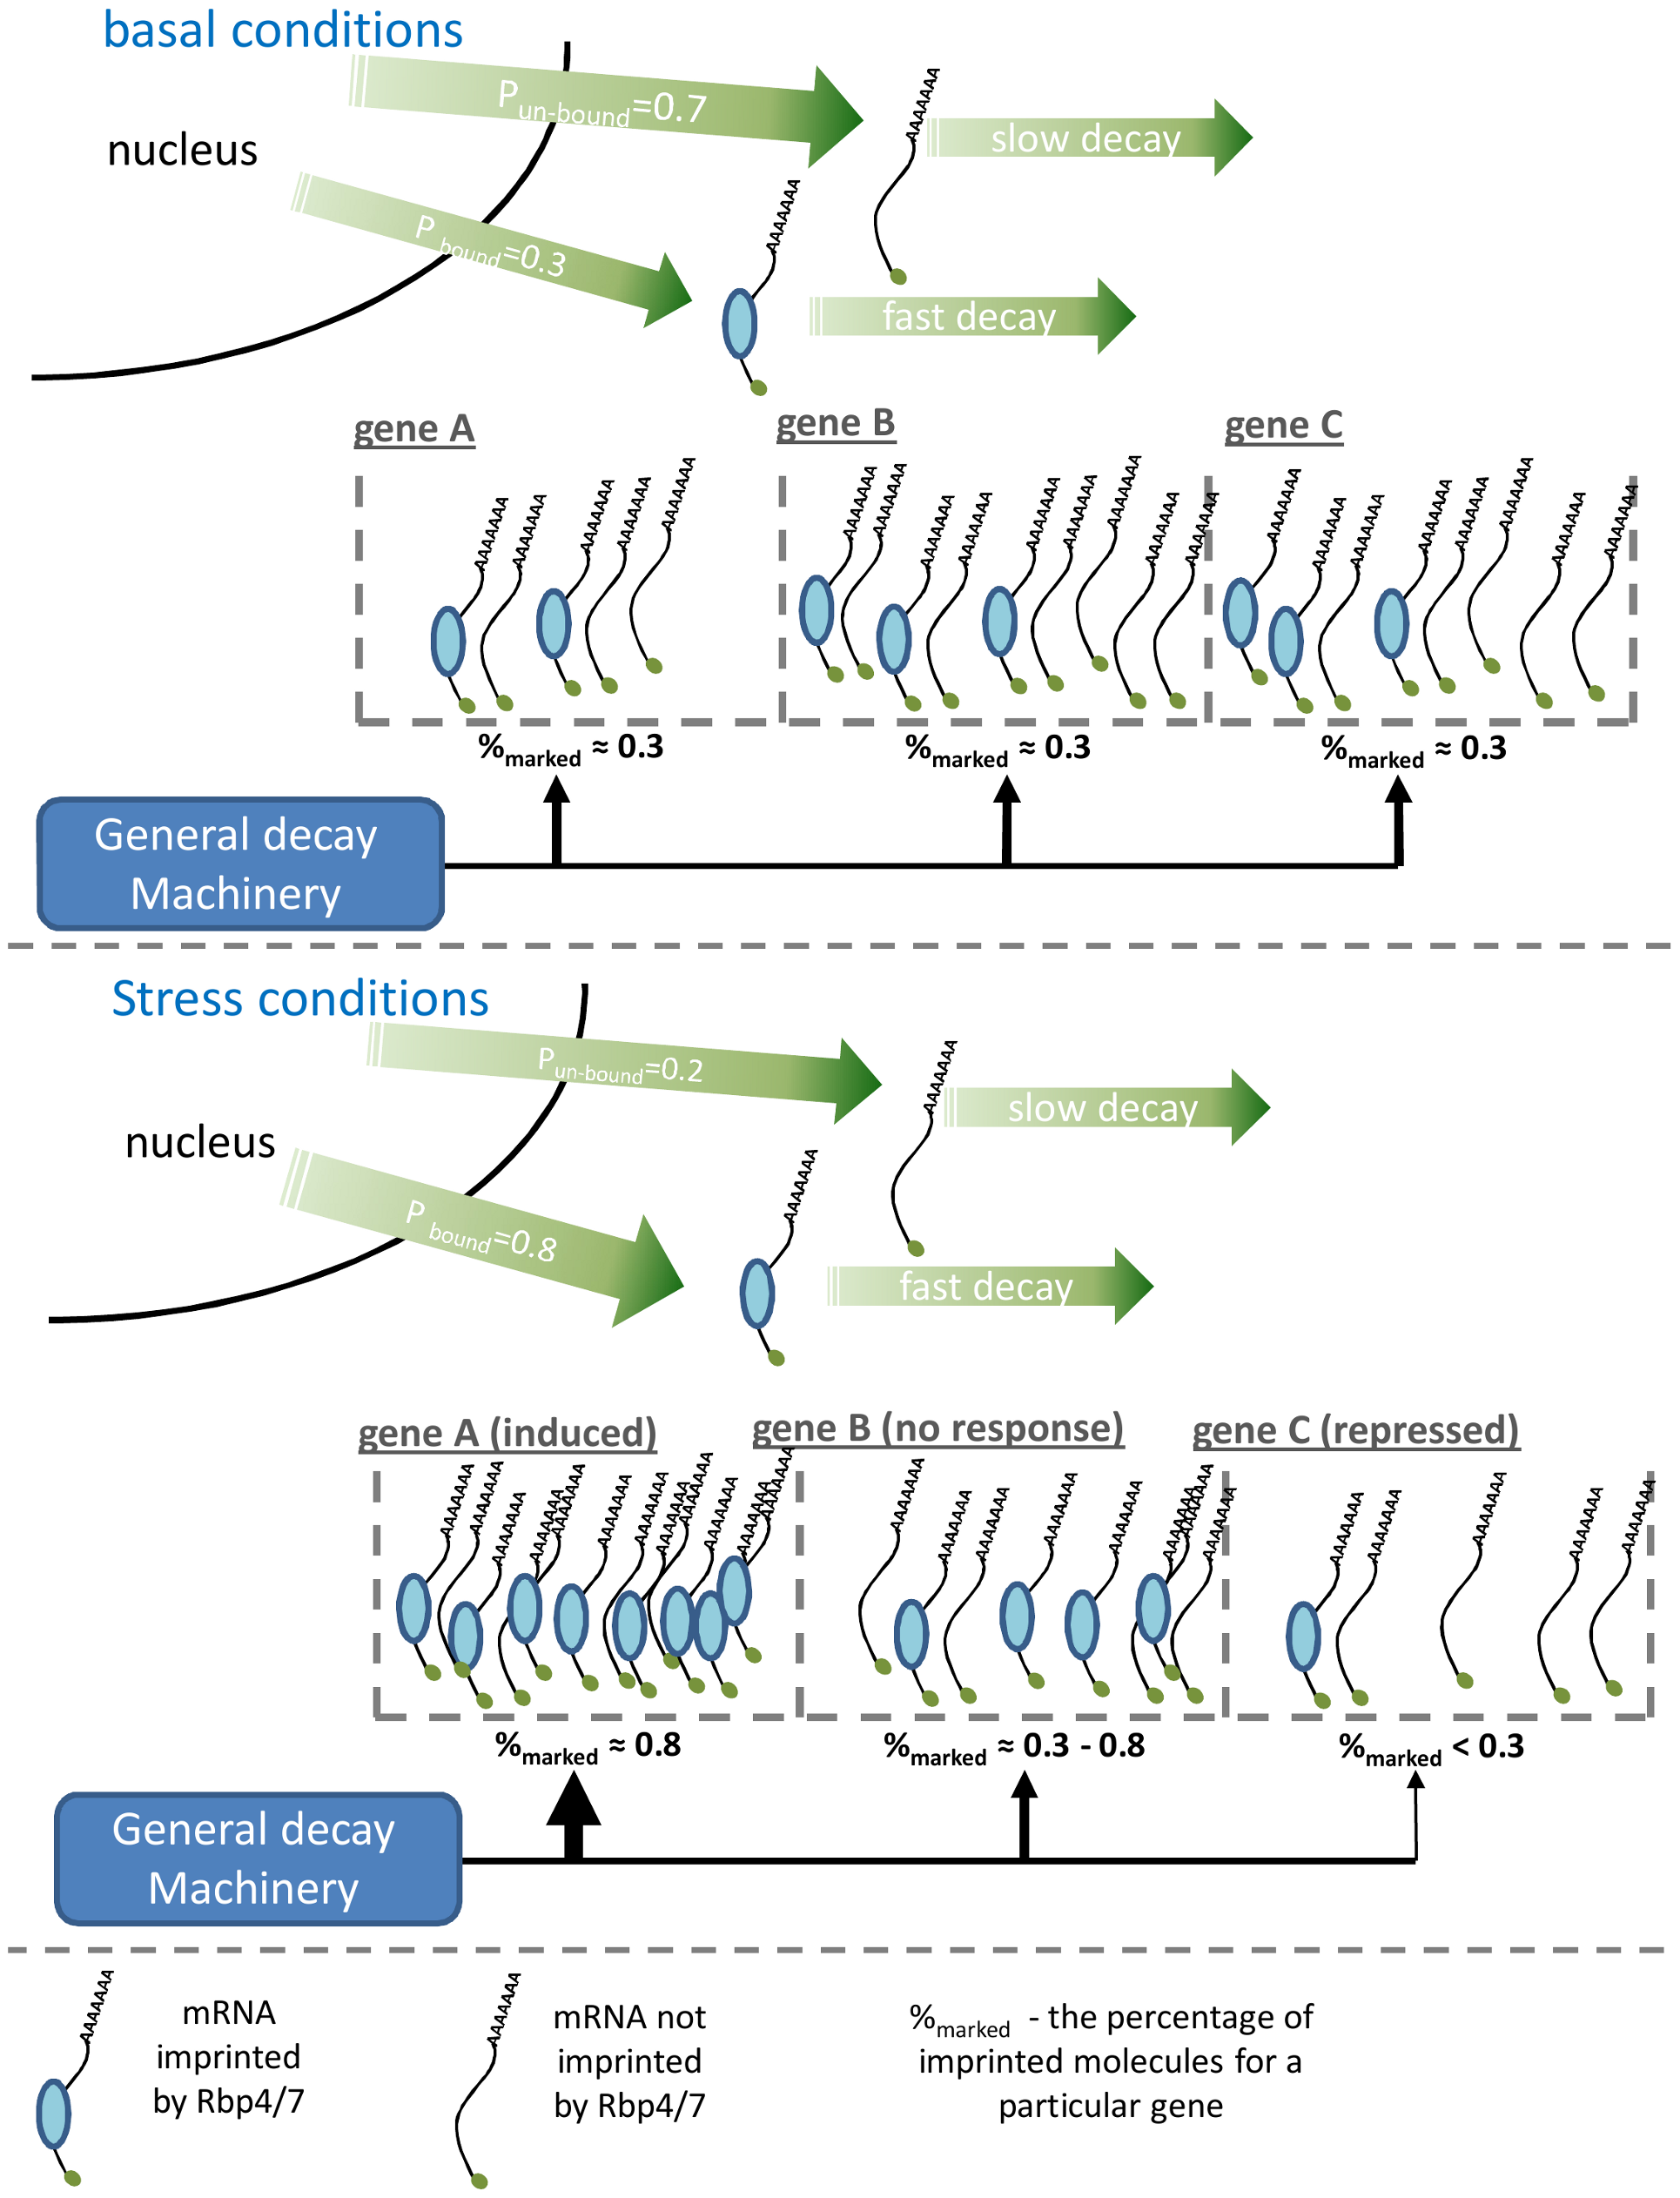 A schematic illustration of the suggested model explaining the genome-wide effect of Rpb4/7.